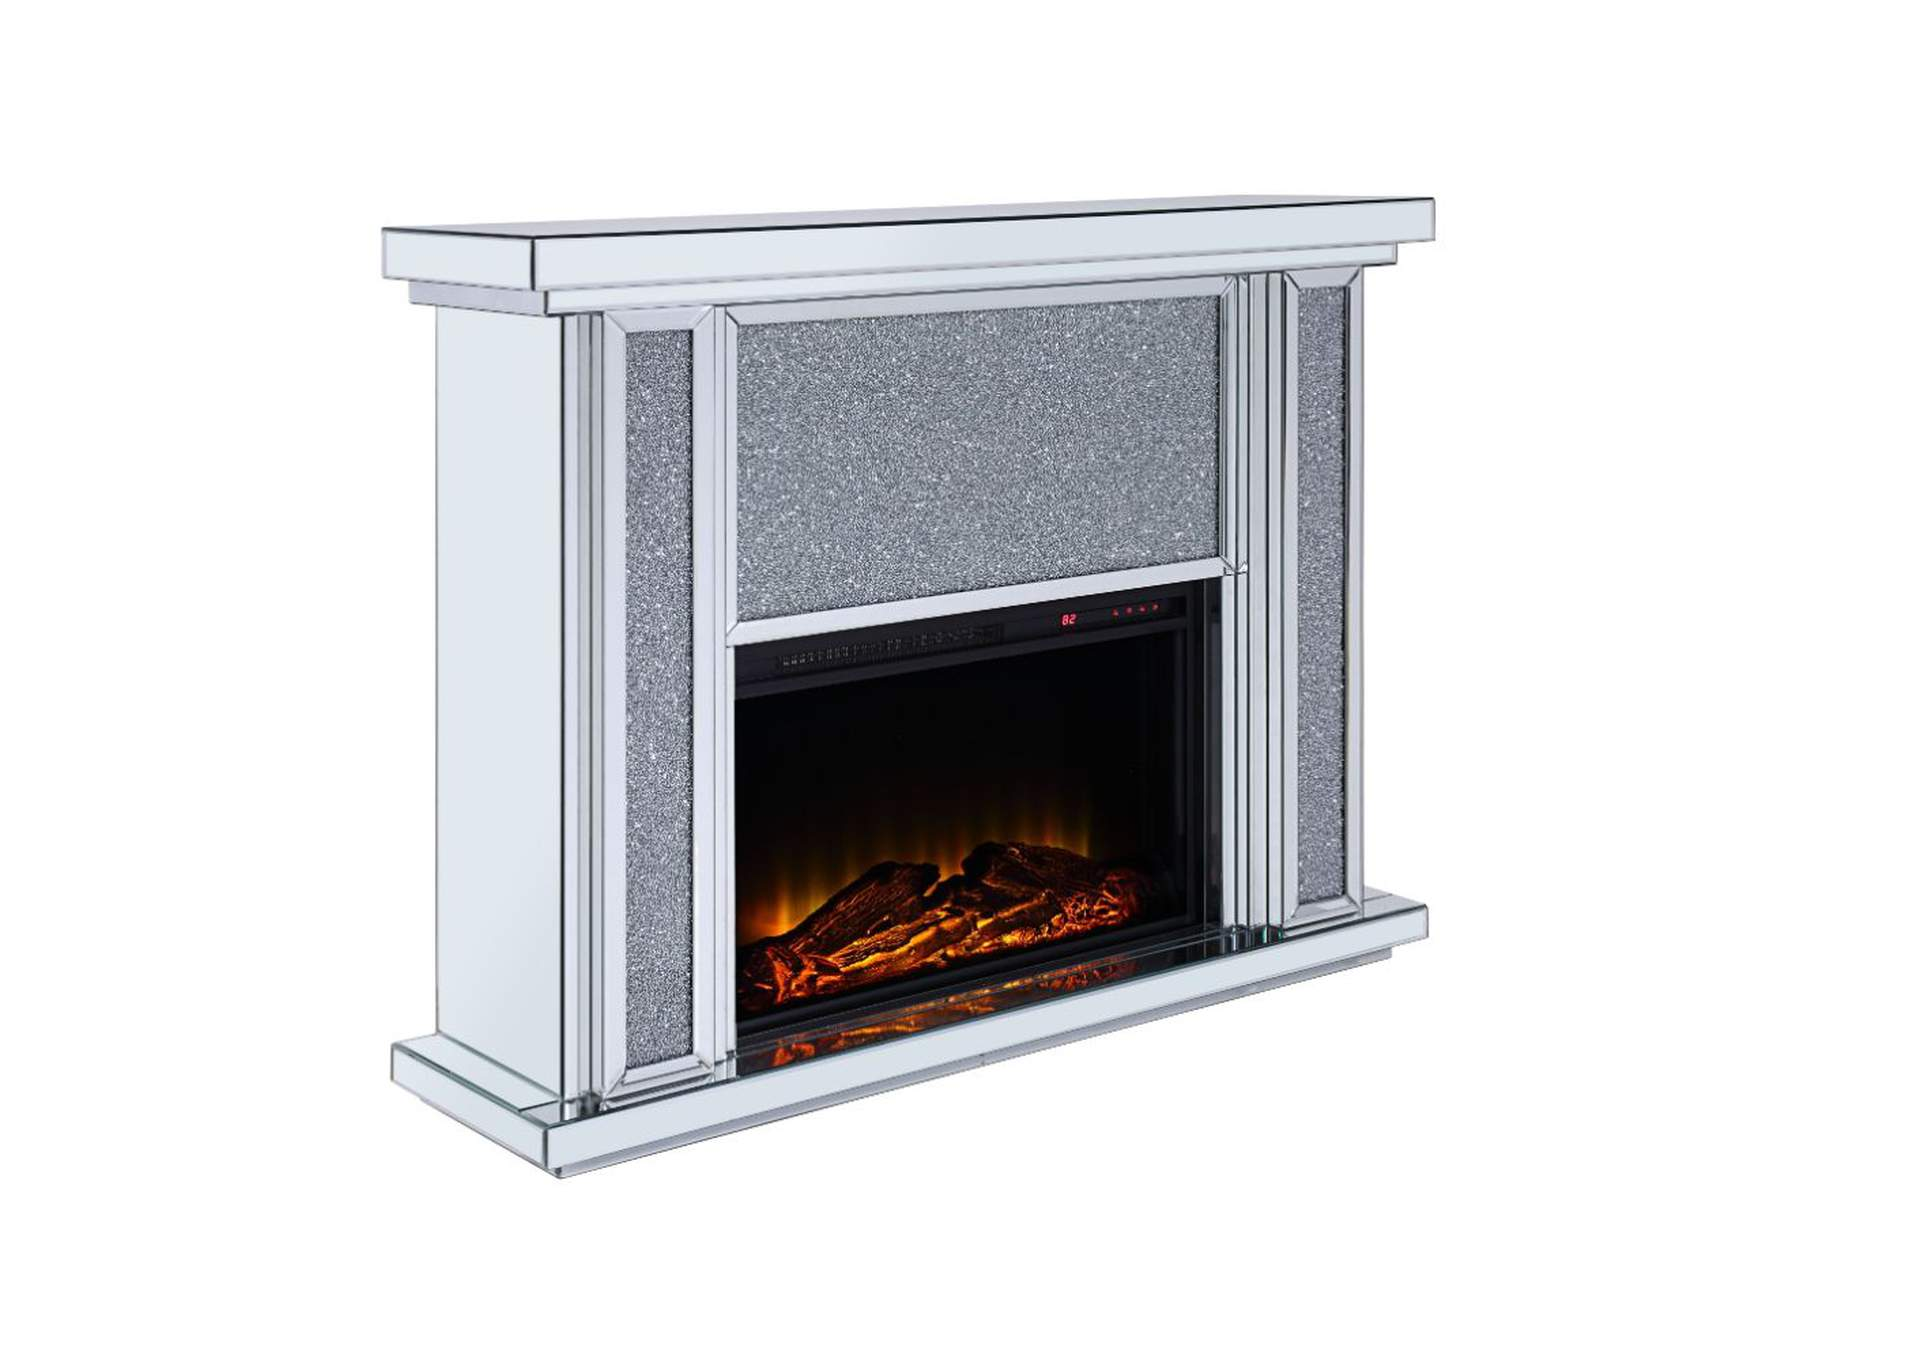 Nowles Mirrored & Faux Stones Fireplace,Acme